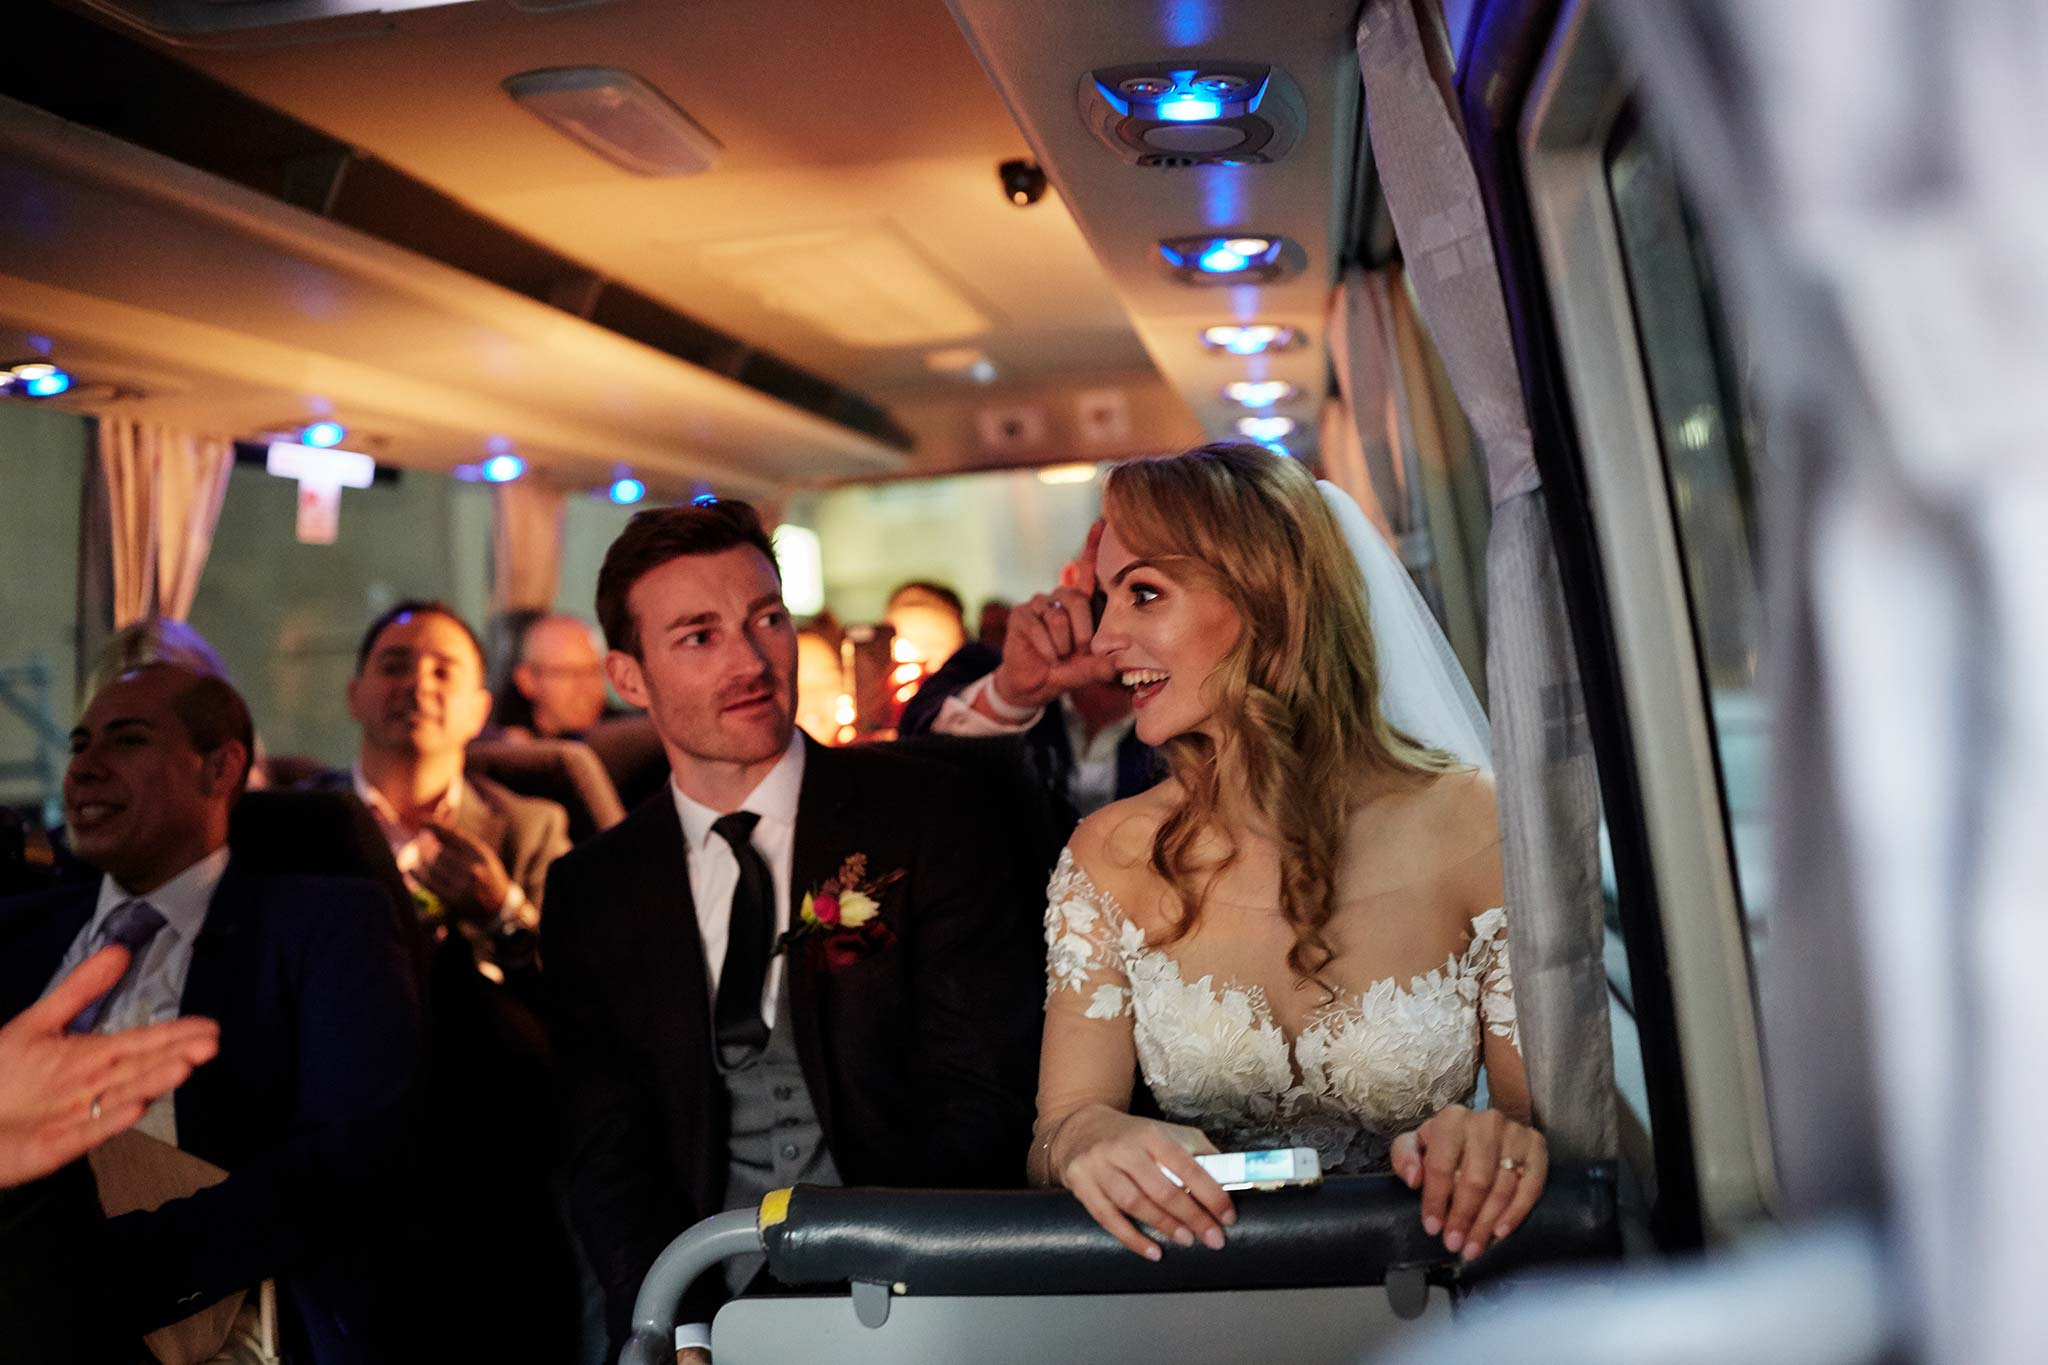 Melbourne-tour-bus-wedding-bride-groom